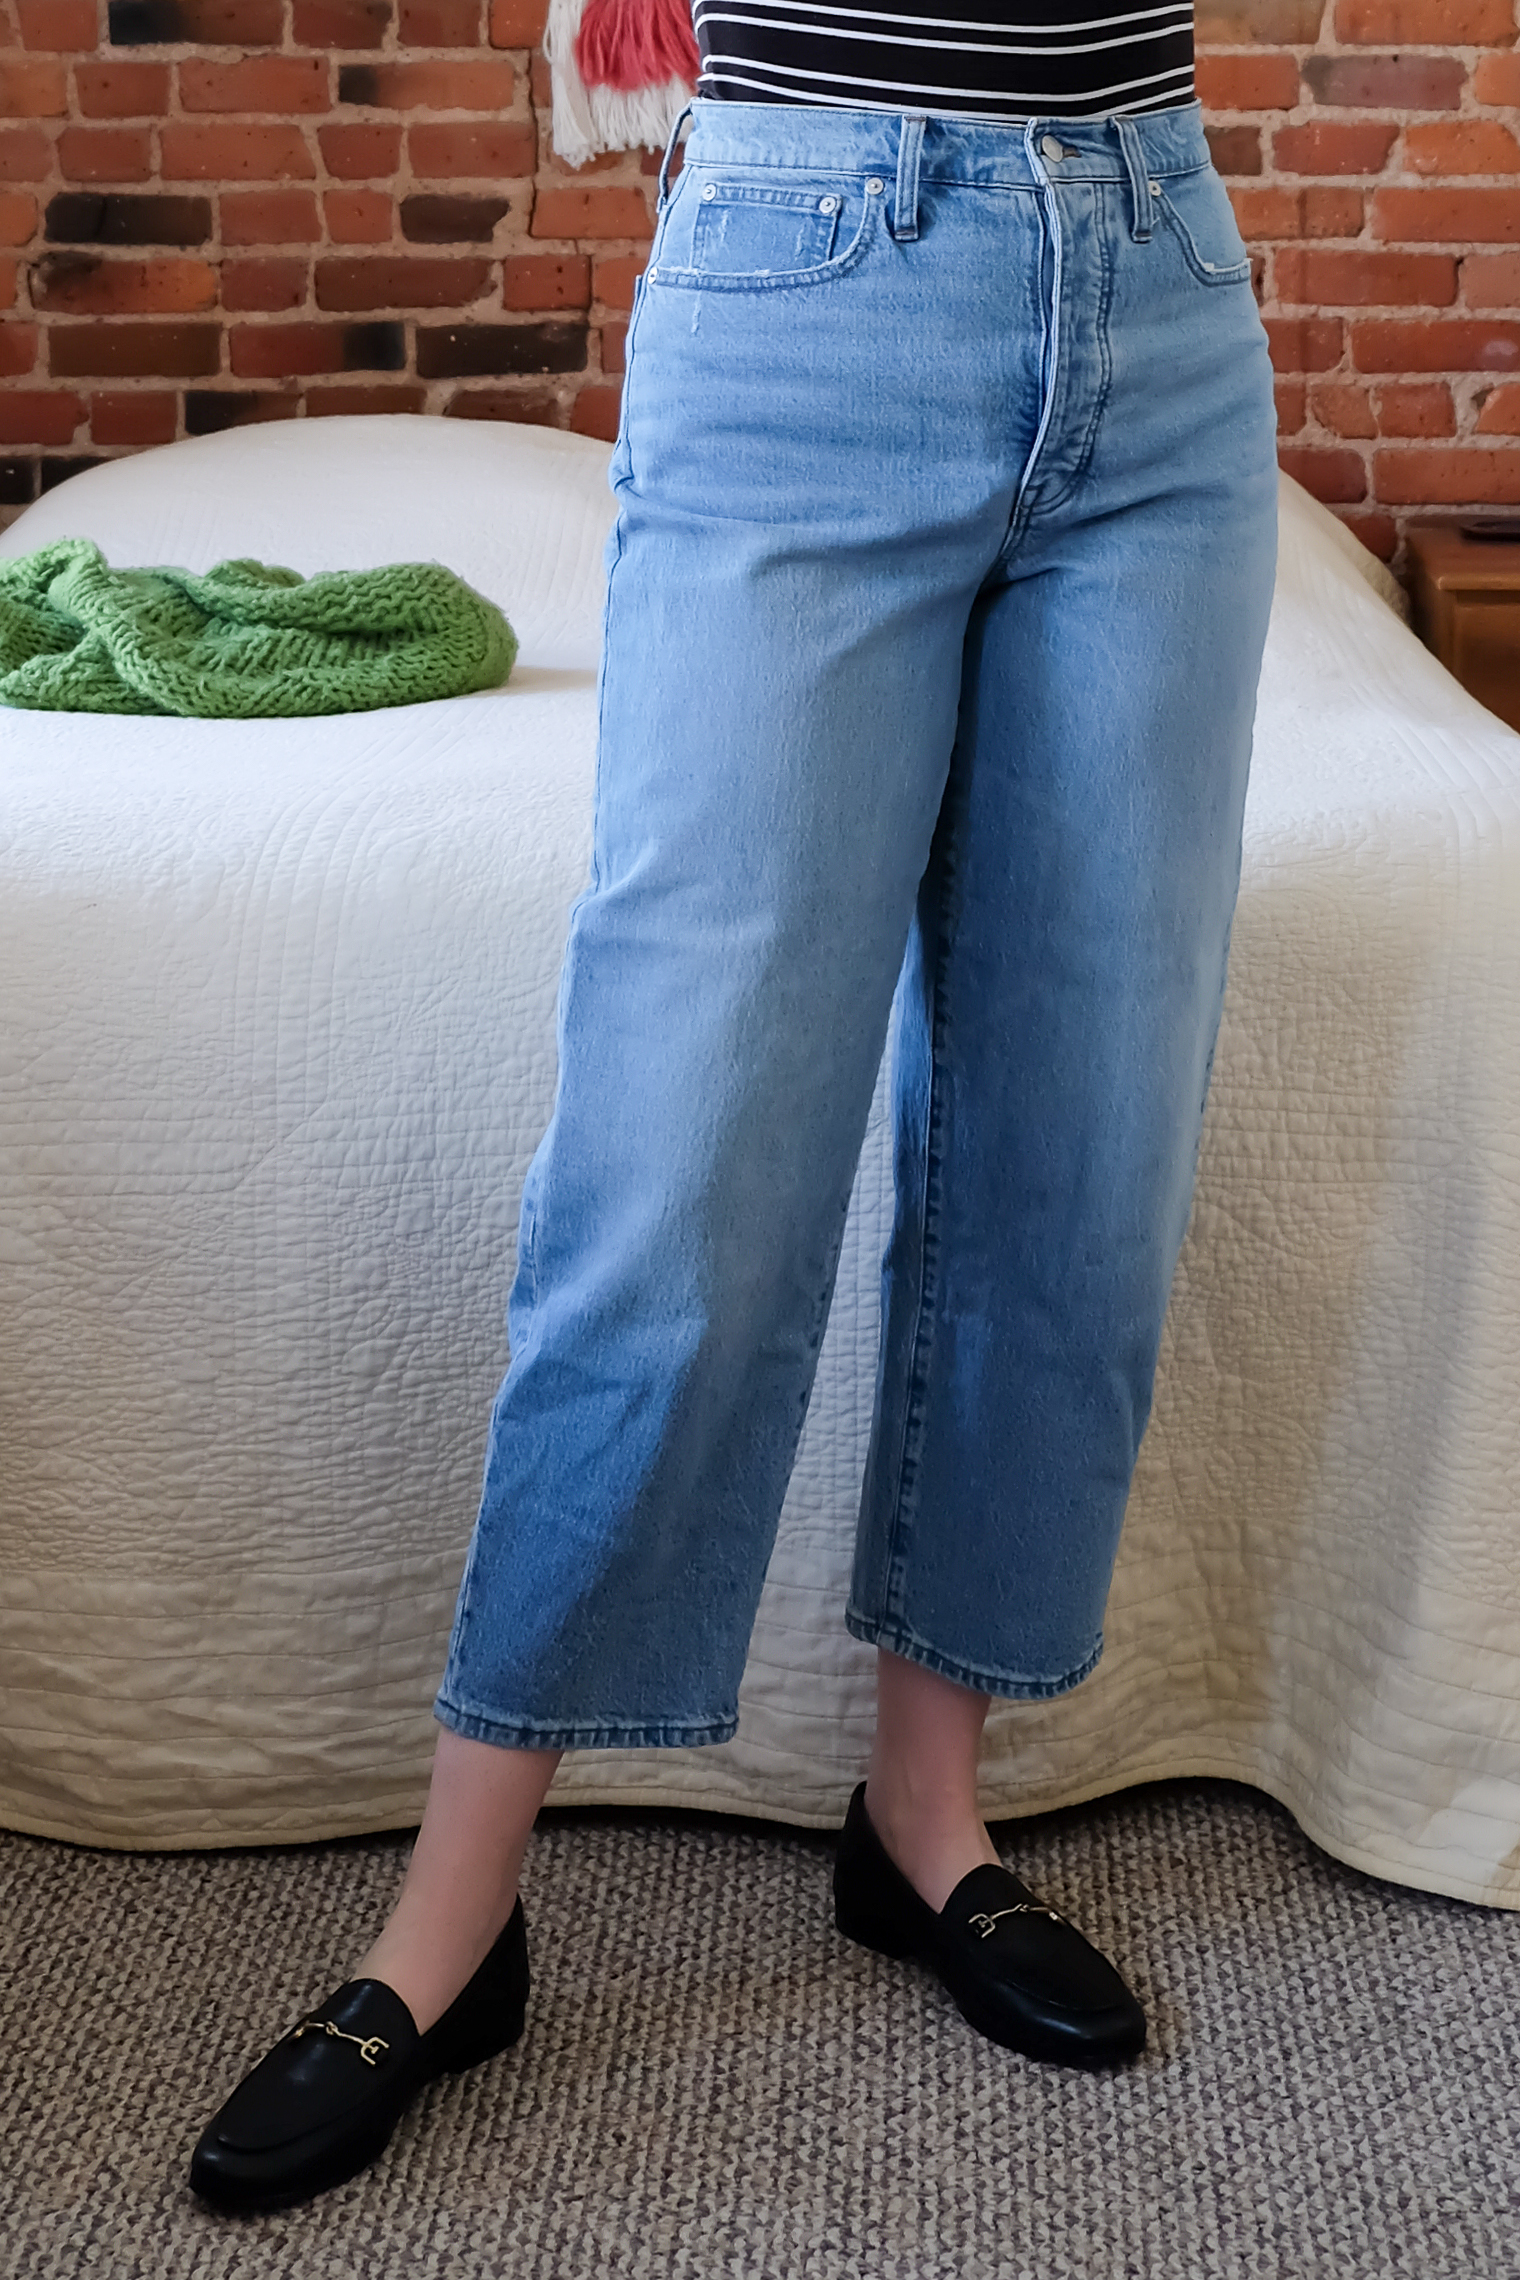 Madewell Balloon Jeans Review